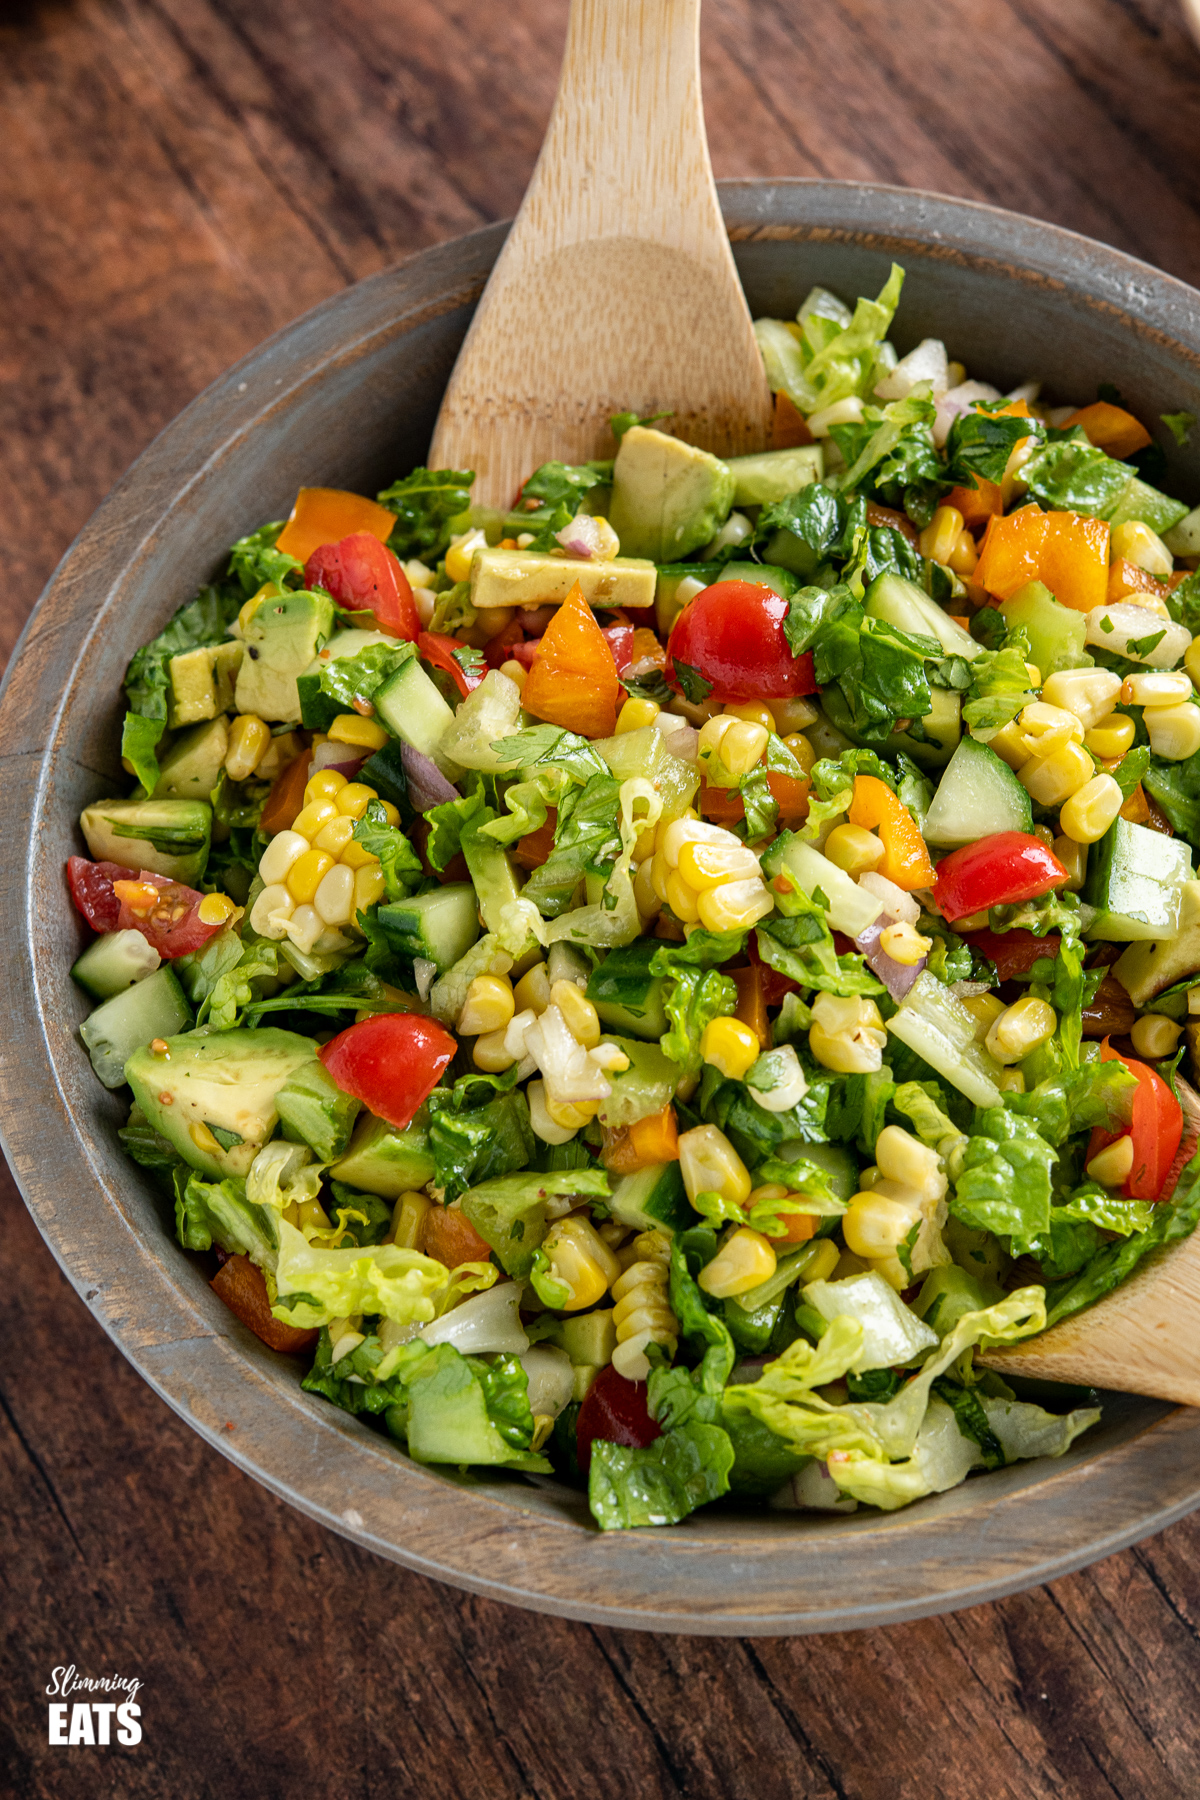 chopped salad in wooden bowl with wooden spoons